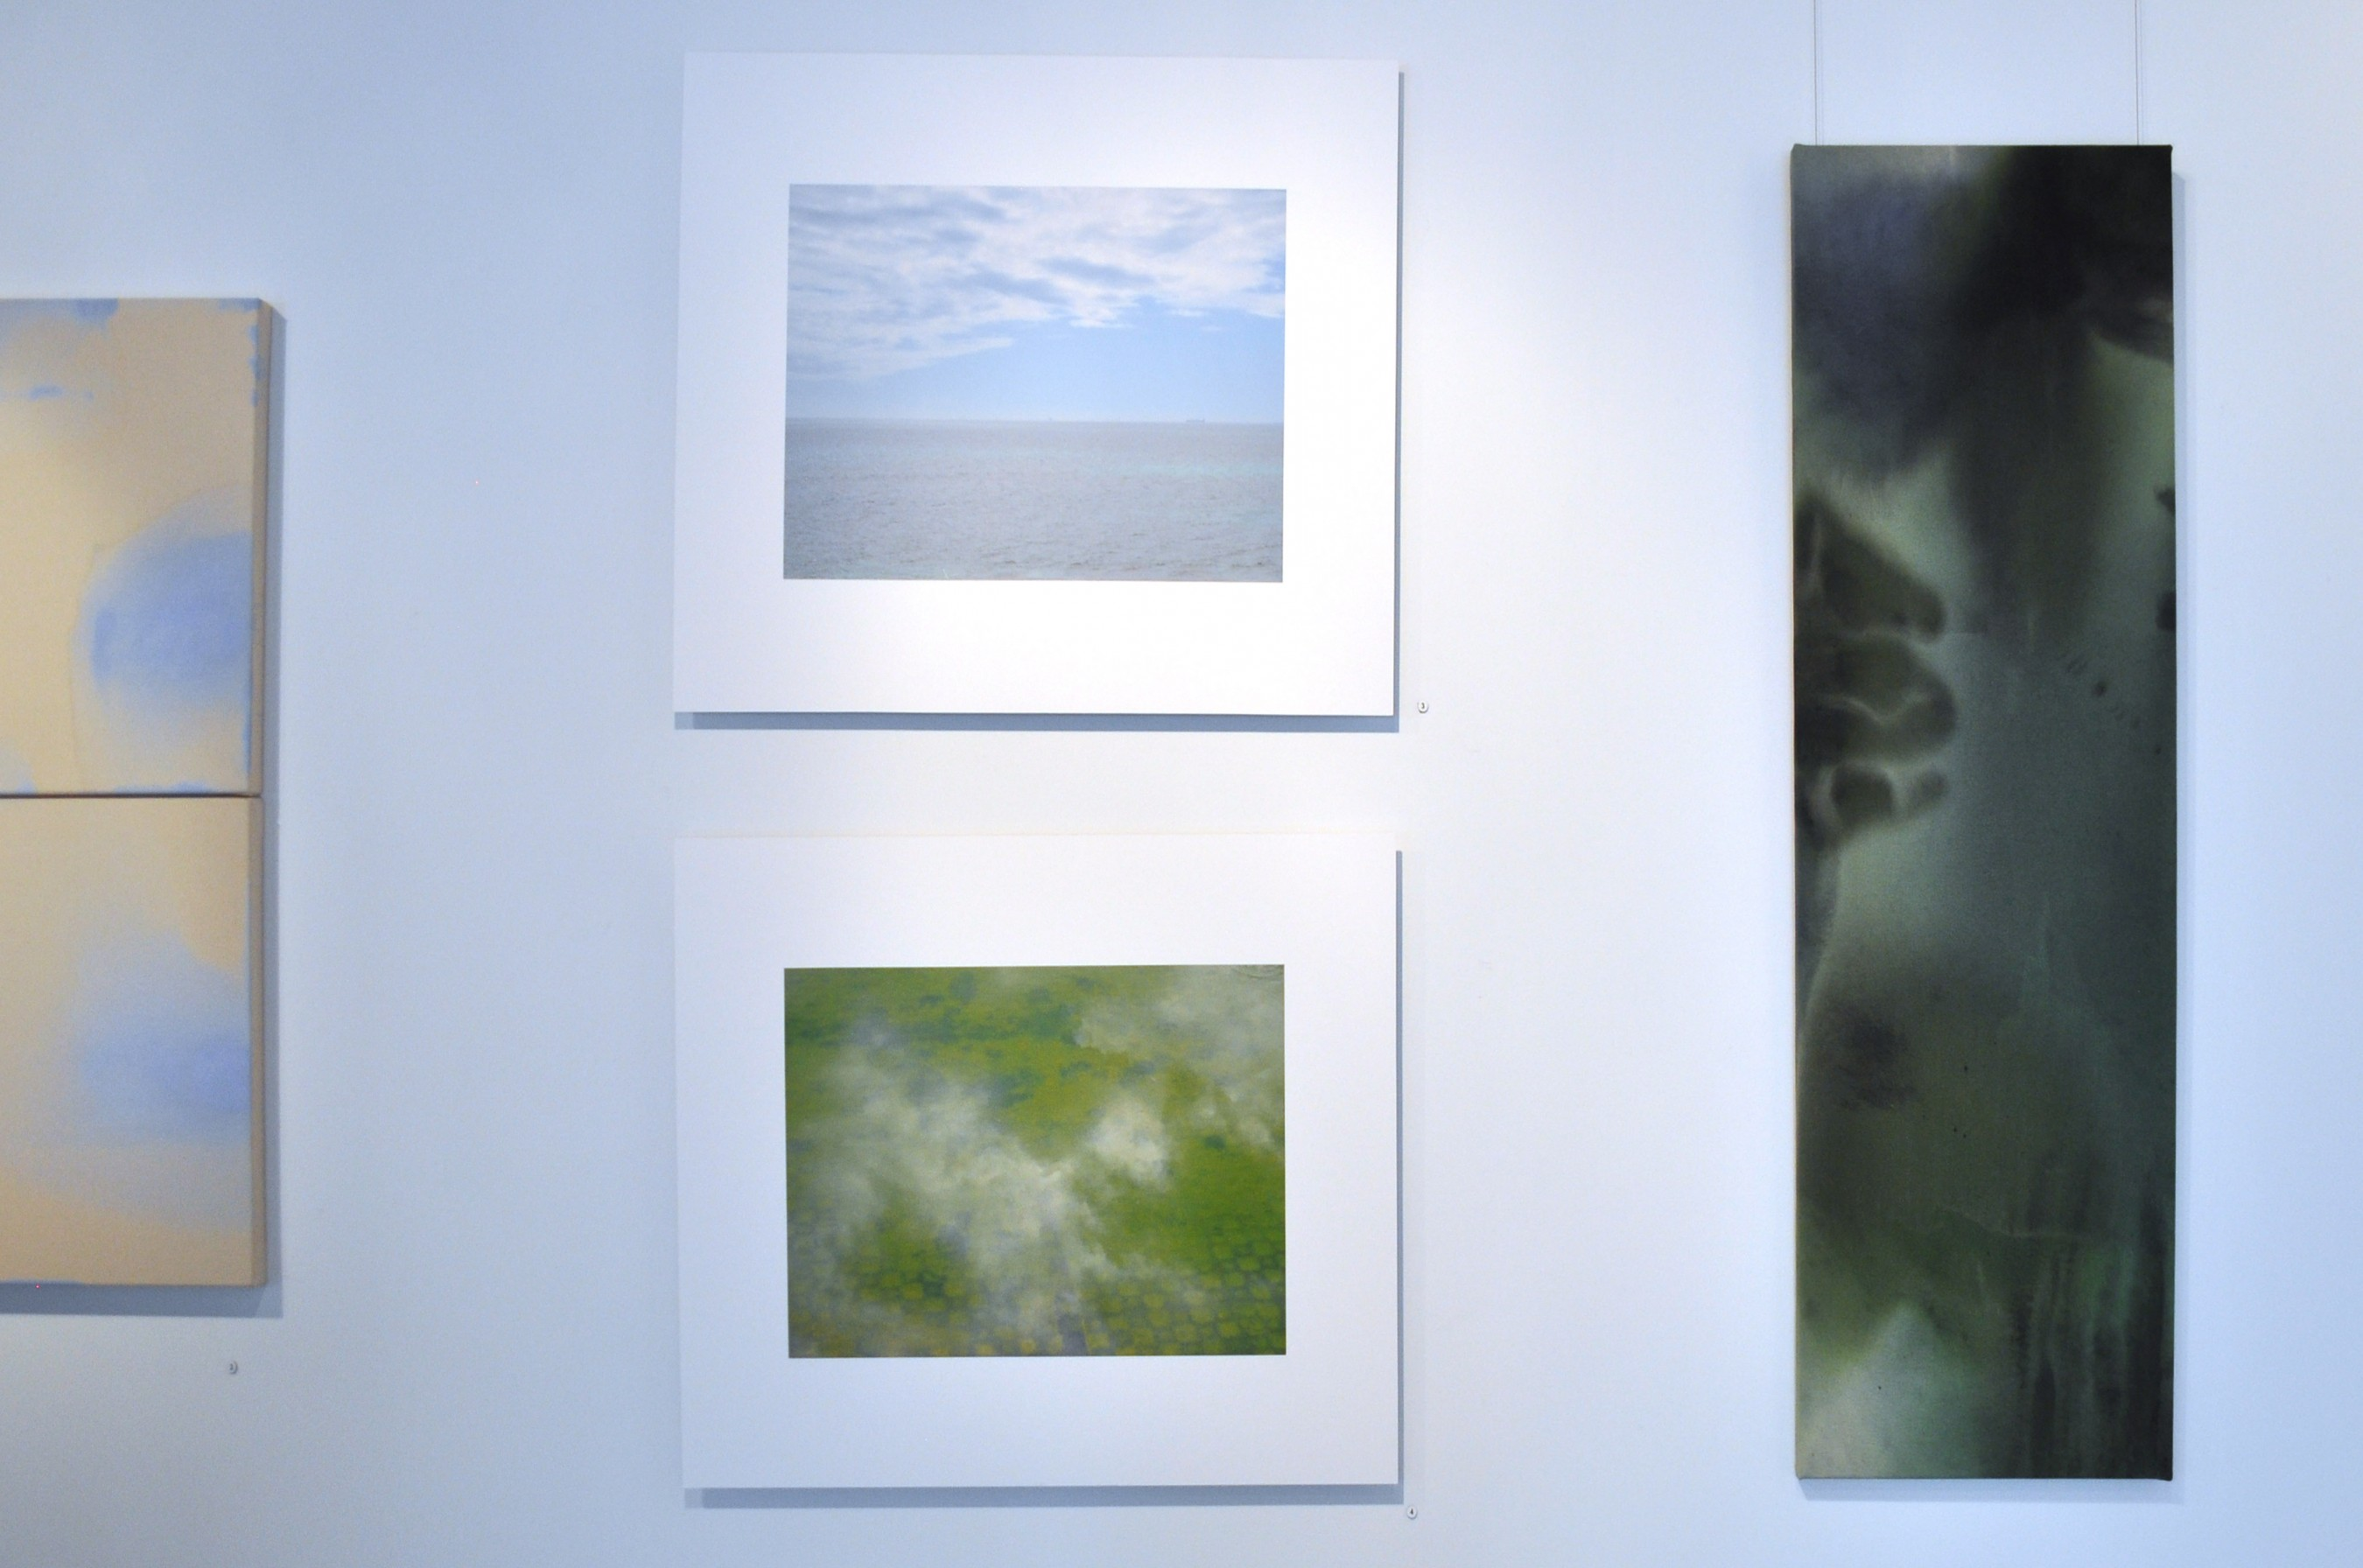 Installation View by Penny Coss